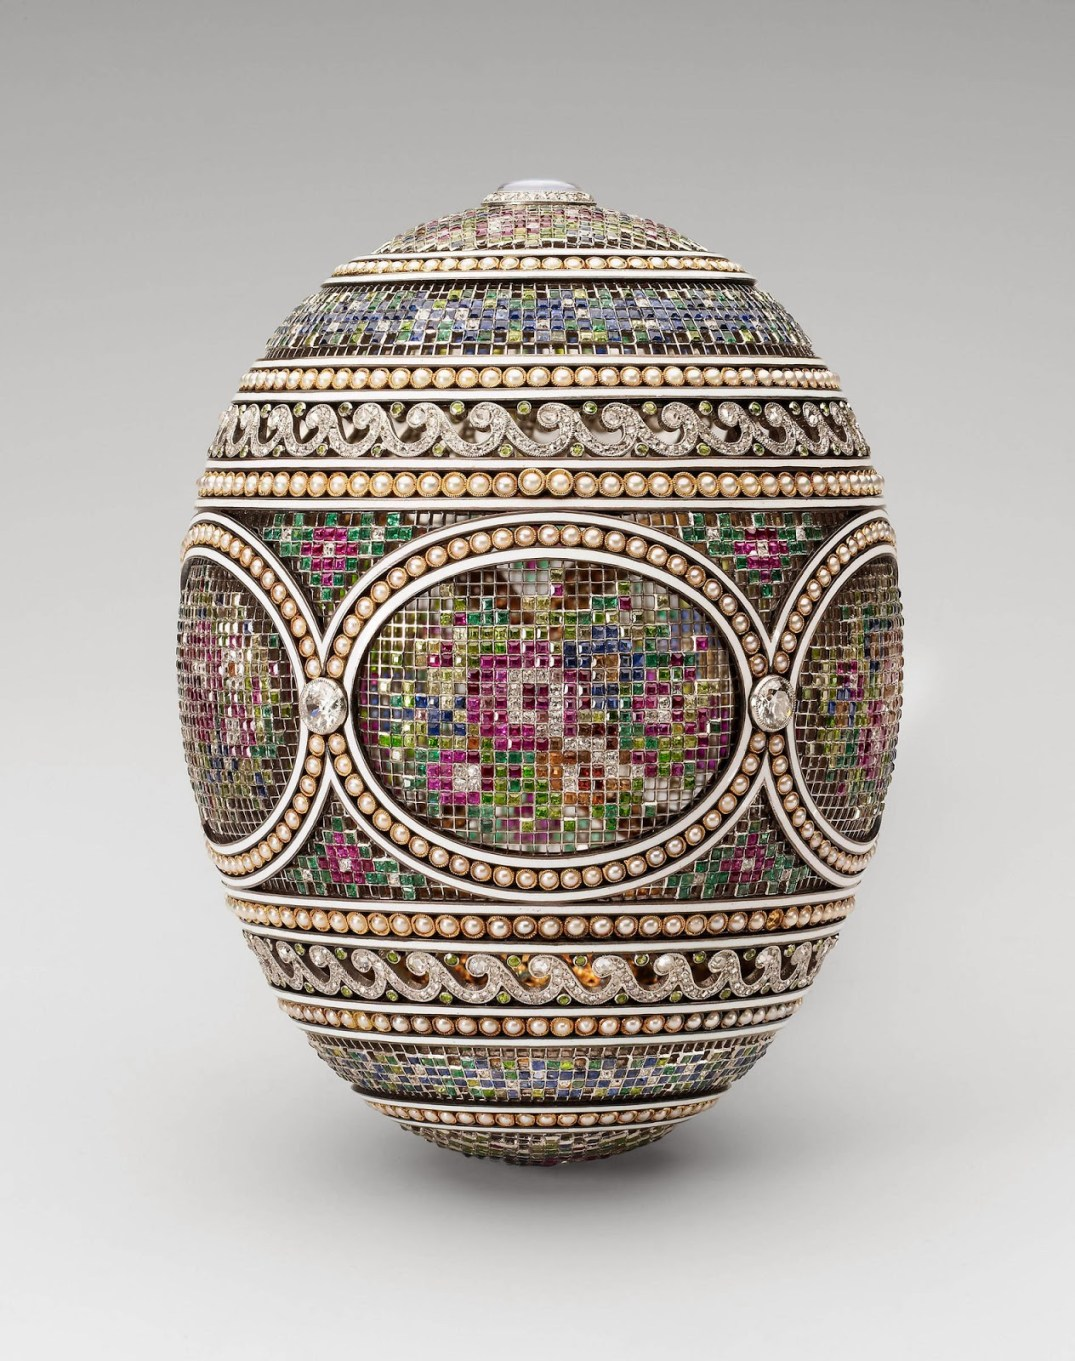 Fabergé Mosaic Egg,1914 Estimated Currently At Approx GBP 27.7 Million. PC- Stalking the Belle Époque